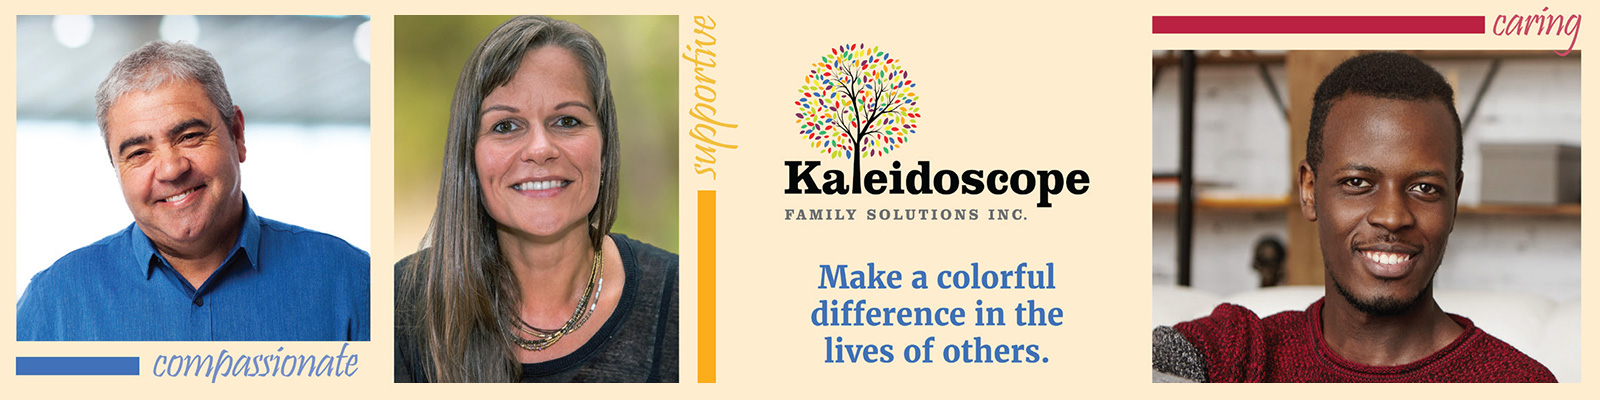 Kaleidoscope Family Solutions Inc - Direct Care Worker banner image